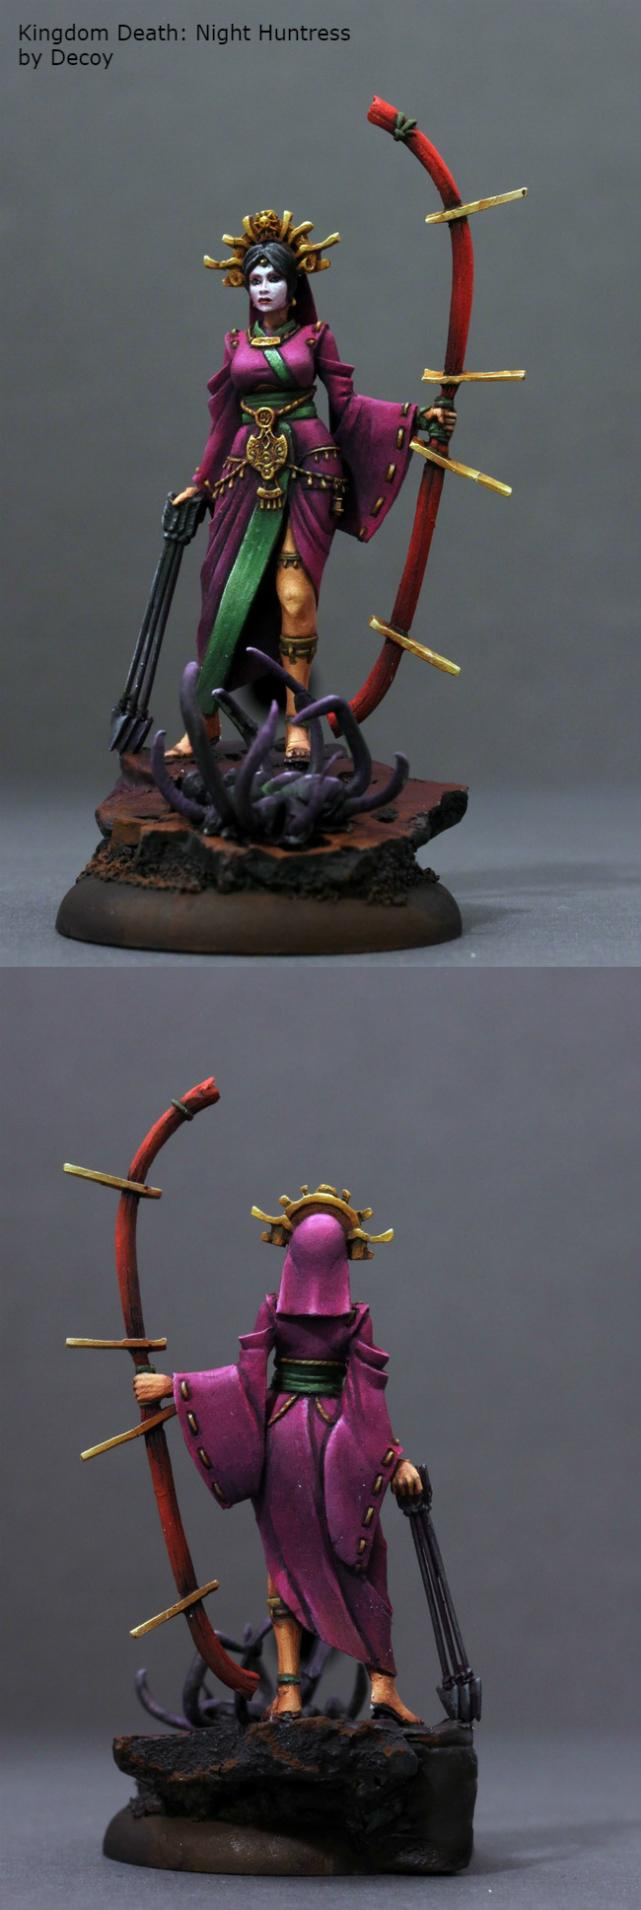 Archers, Boardgame, Chinese, Female, Kingdom Death, Miniature, Monster, Painting